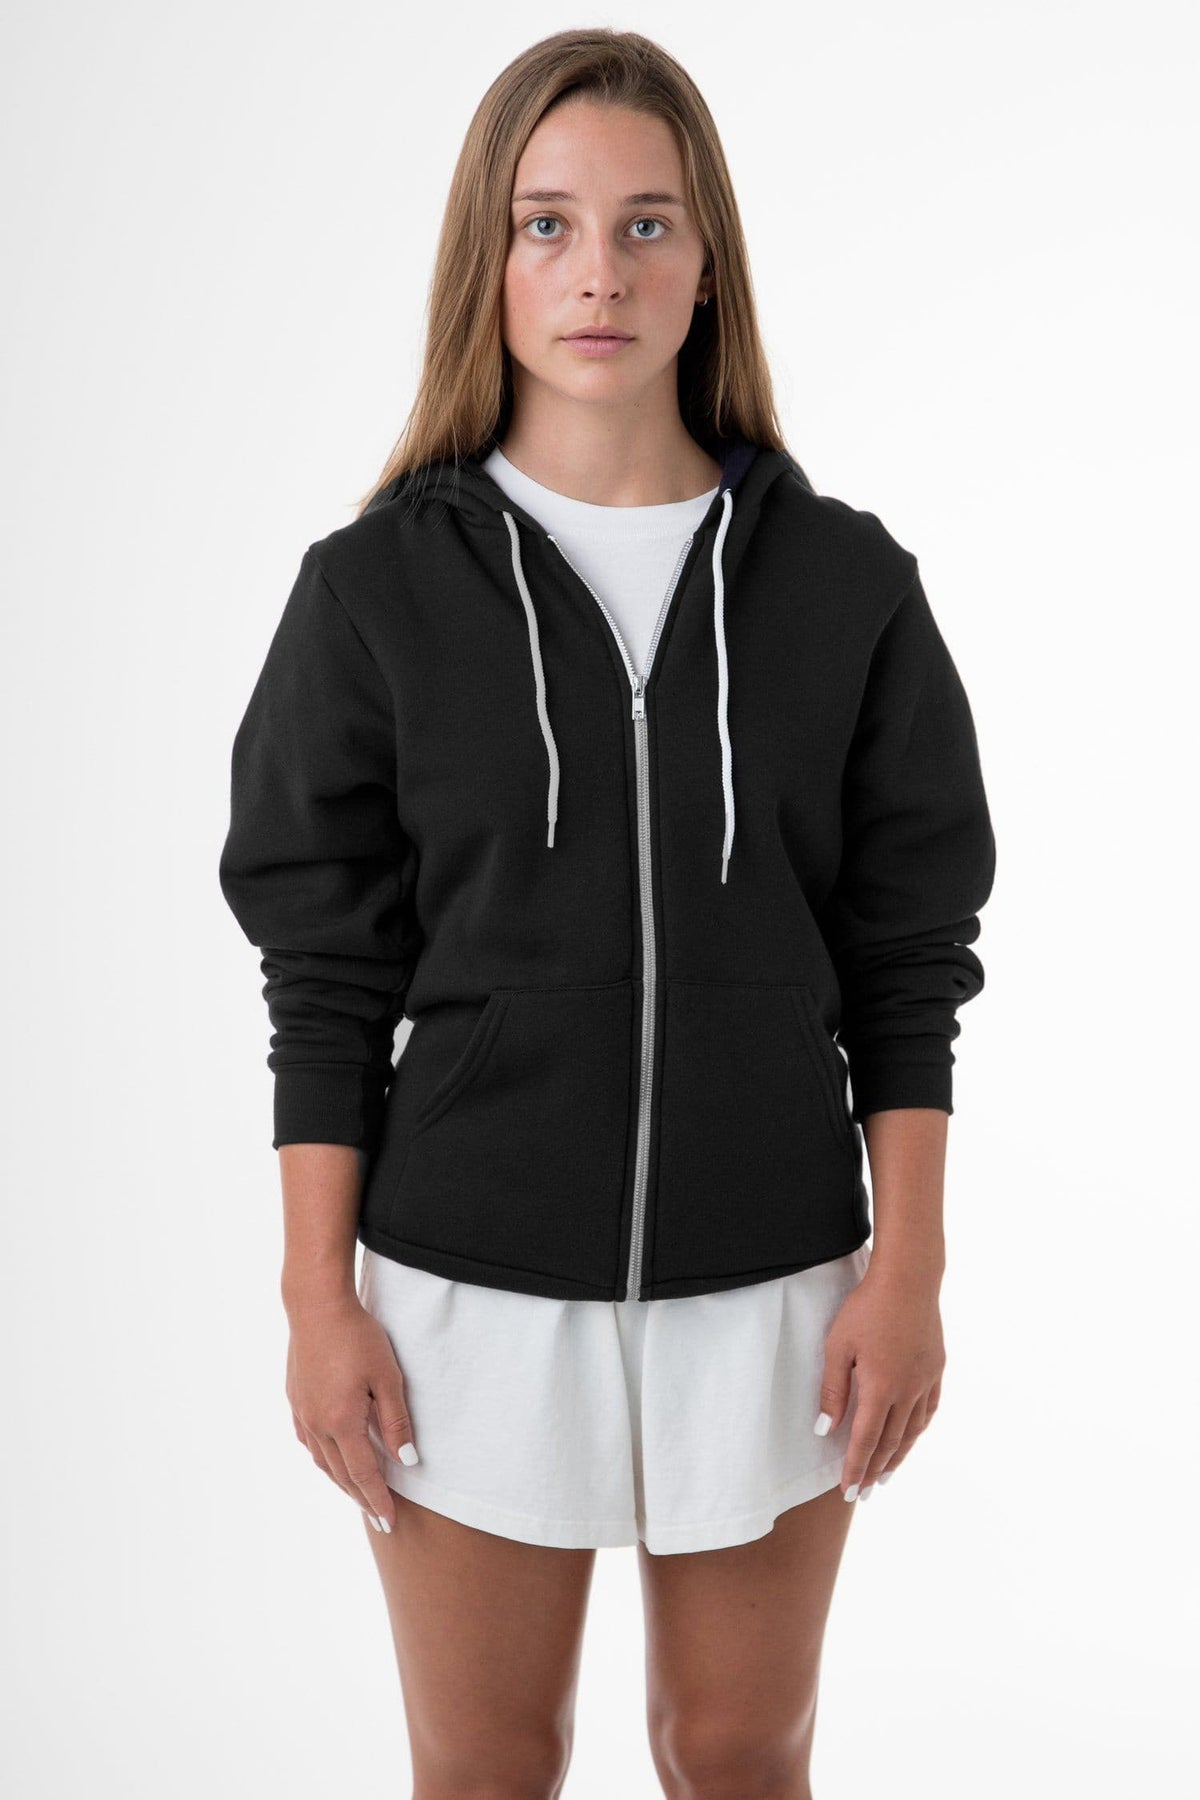 F97 Unisex - Flex Fleece Zip Up Hoodie